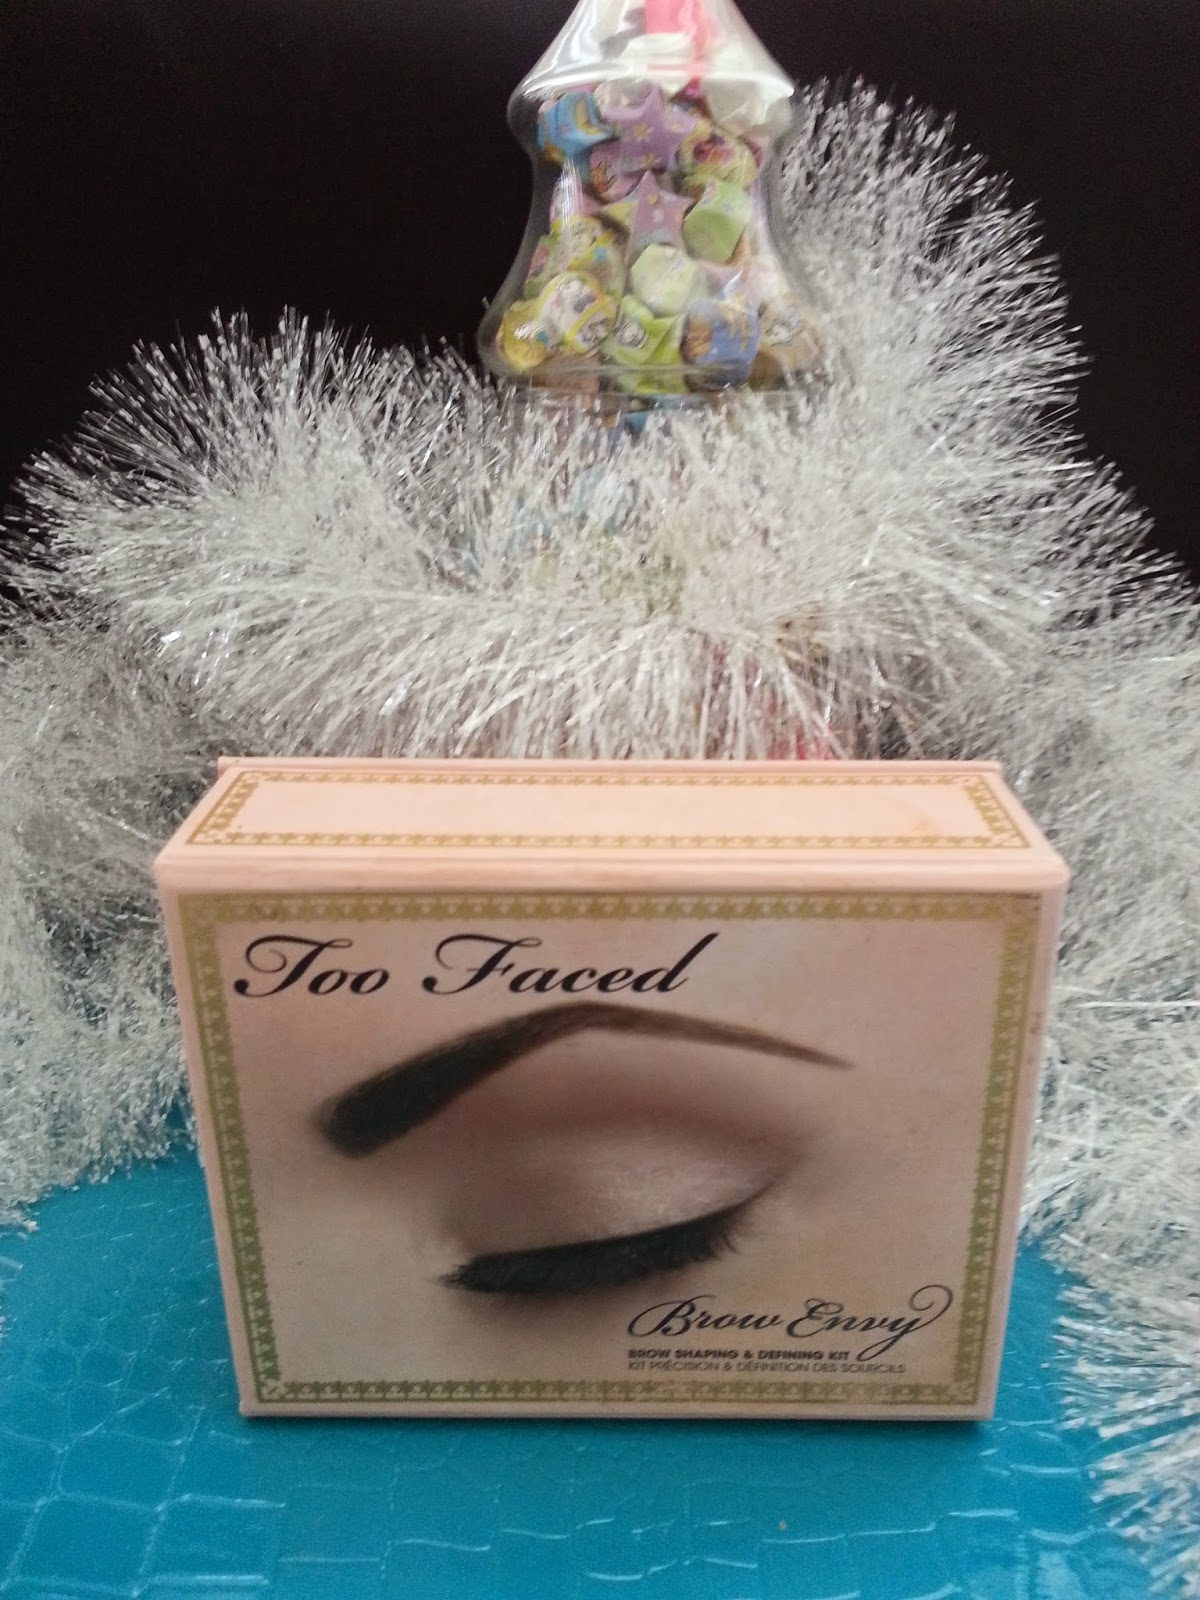 Too Faced brows kit